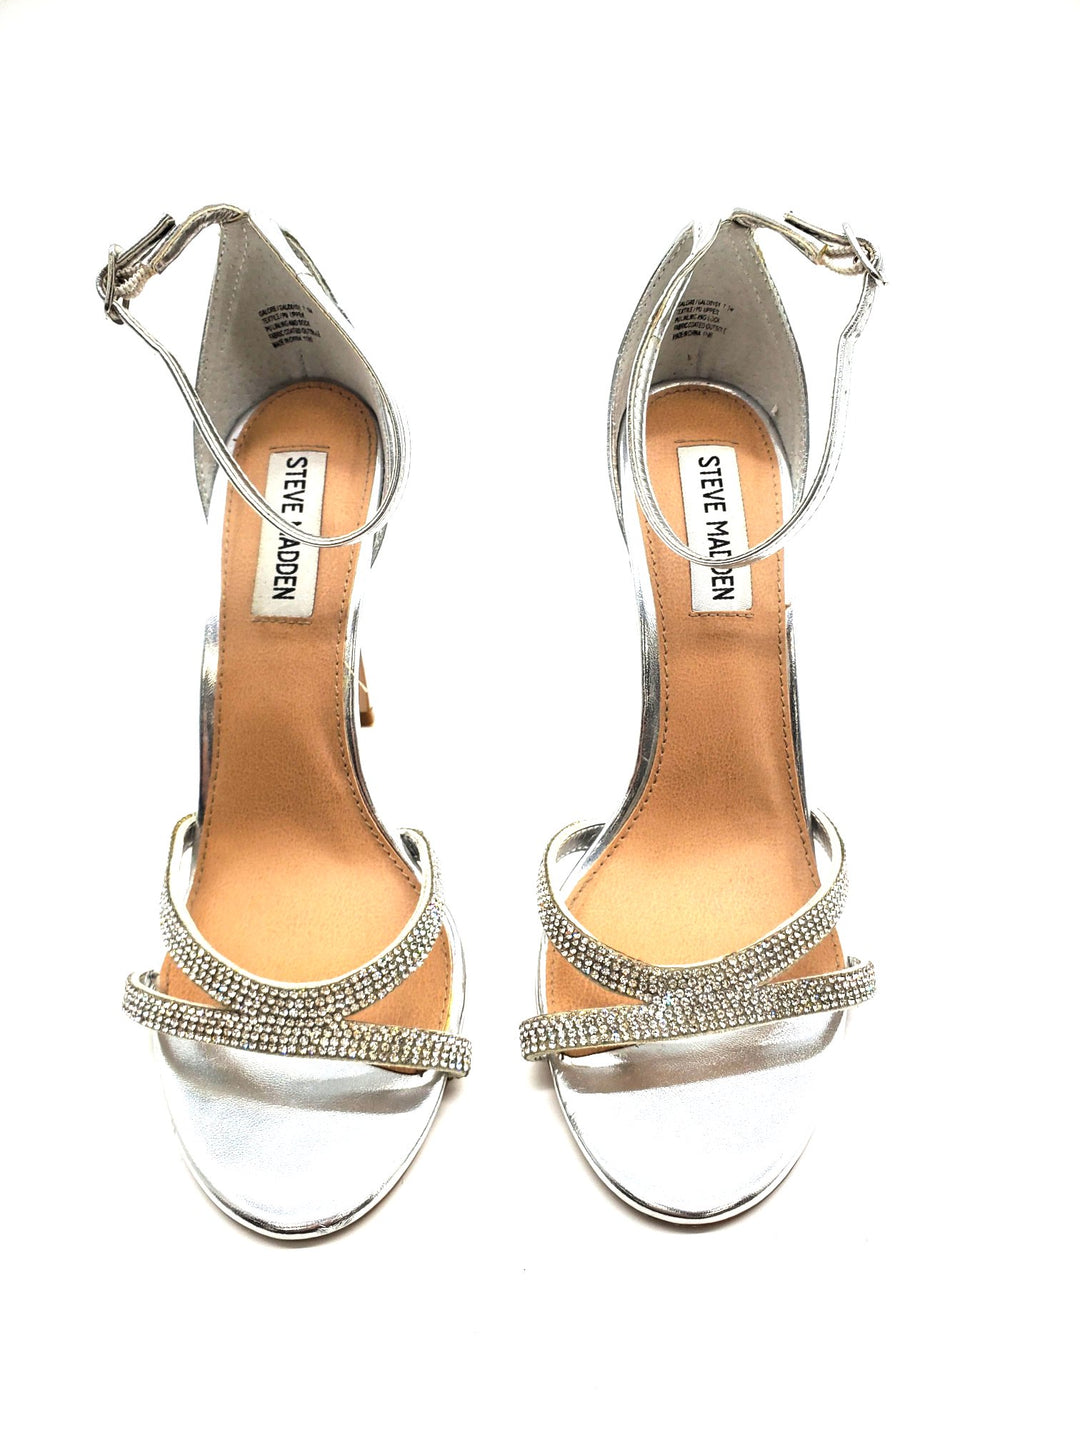 Primary Photo - BRAND: STEVE MADDEN <BR>STYLE: SANDALS LOW <BR>COLOR: SPARKLES <BR>SIZE: 7.5 <BR>SKU: 262-26275-63732<BR>AS IS